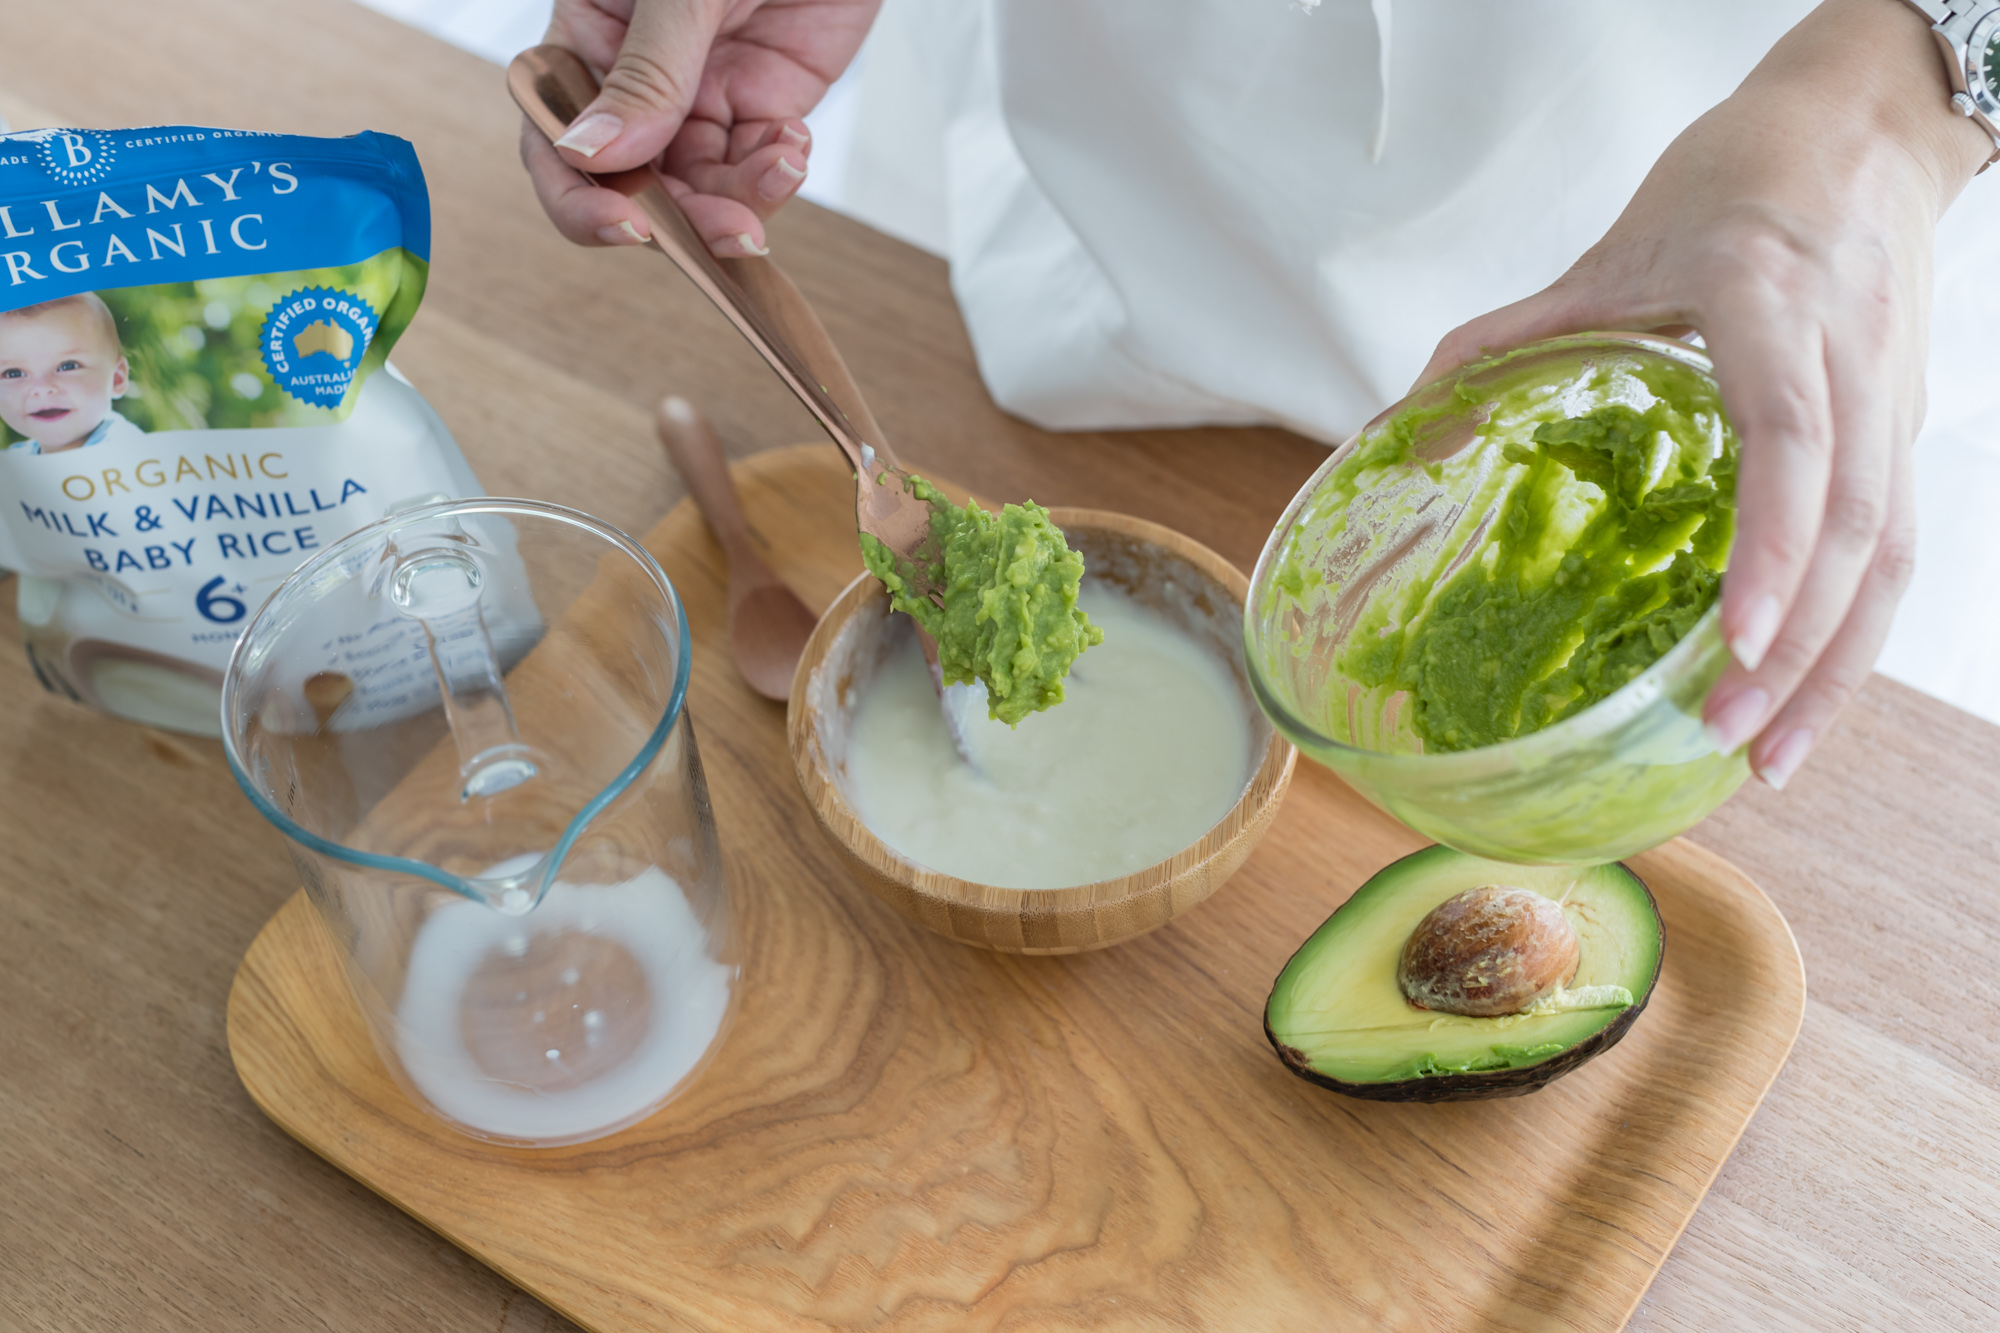 Mix the avocado puree into the rice cereal and mix well till smooth.